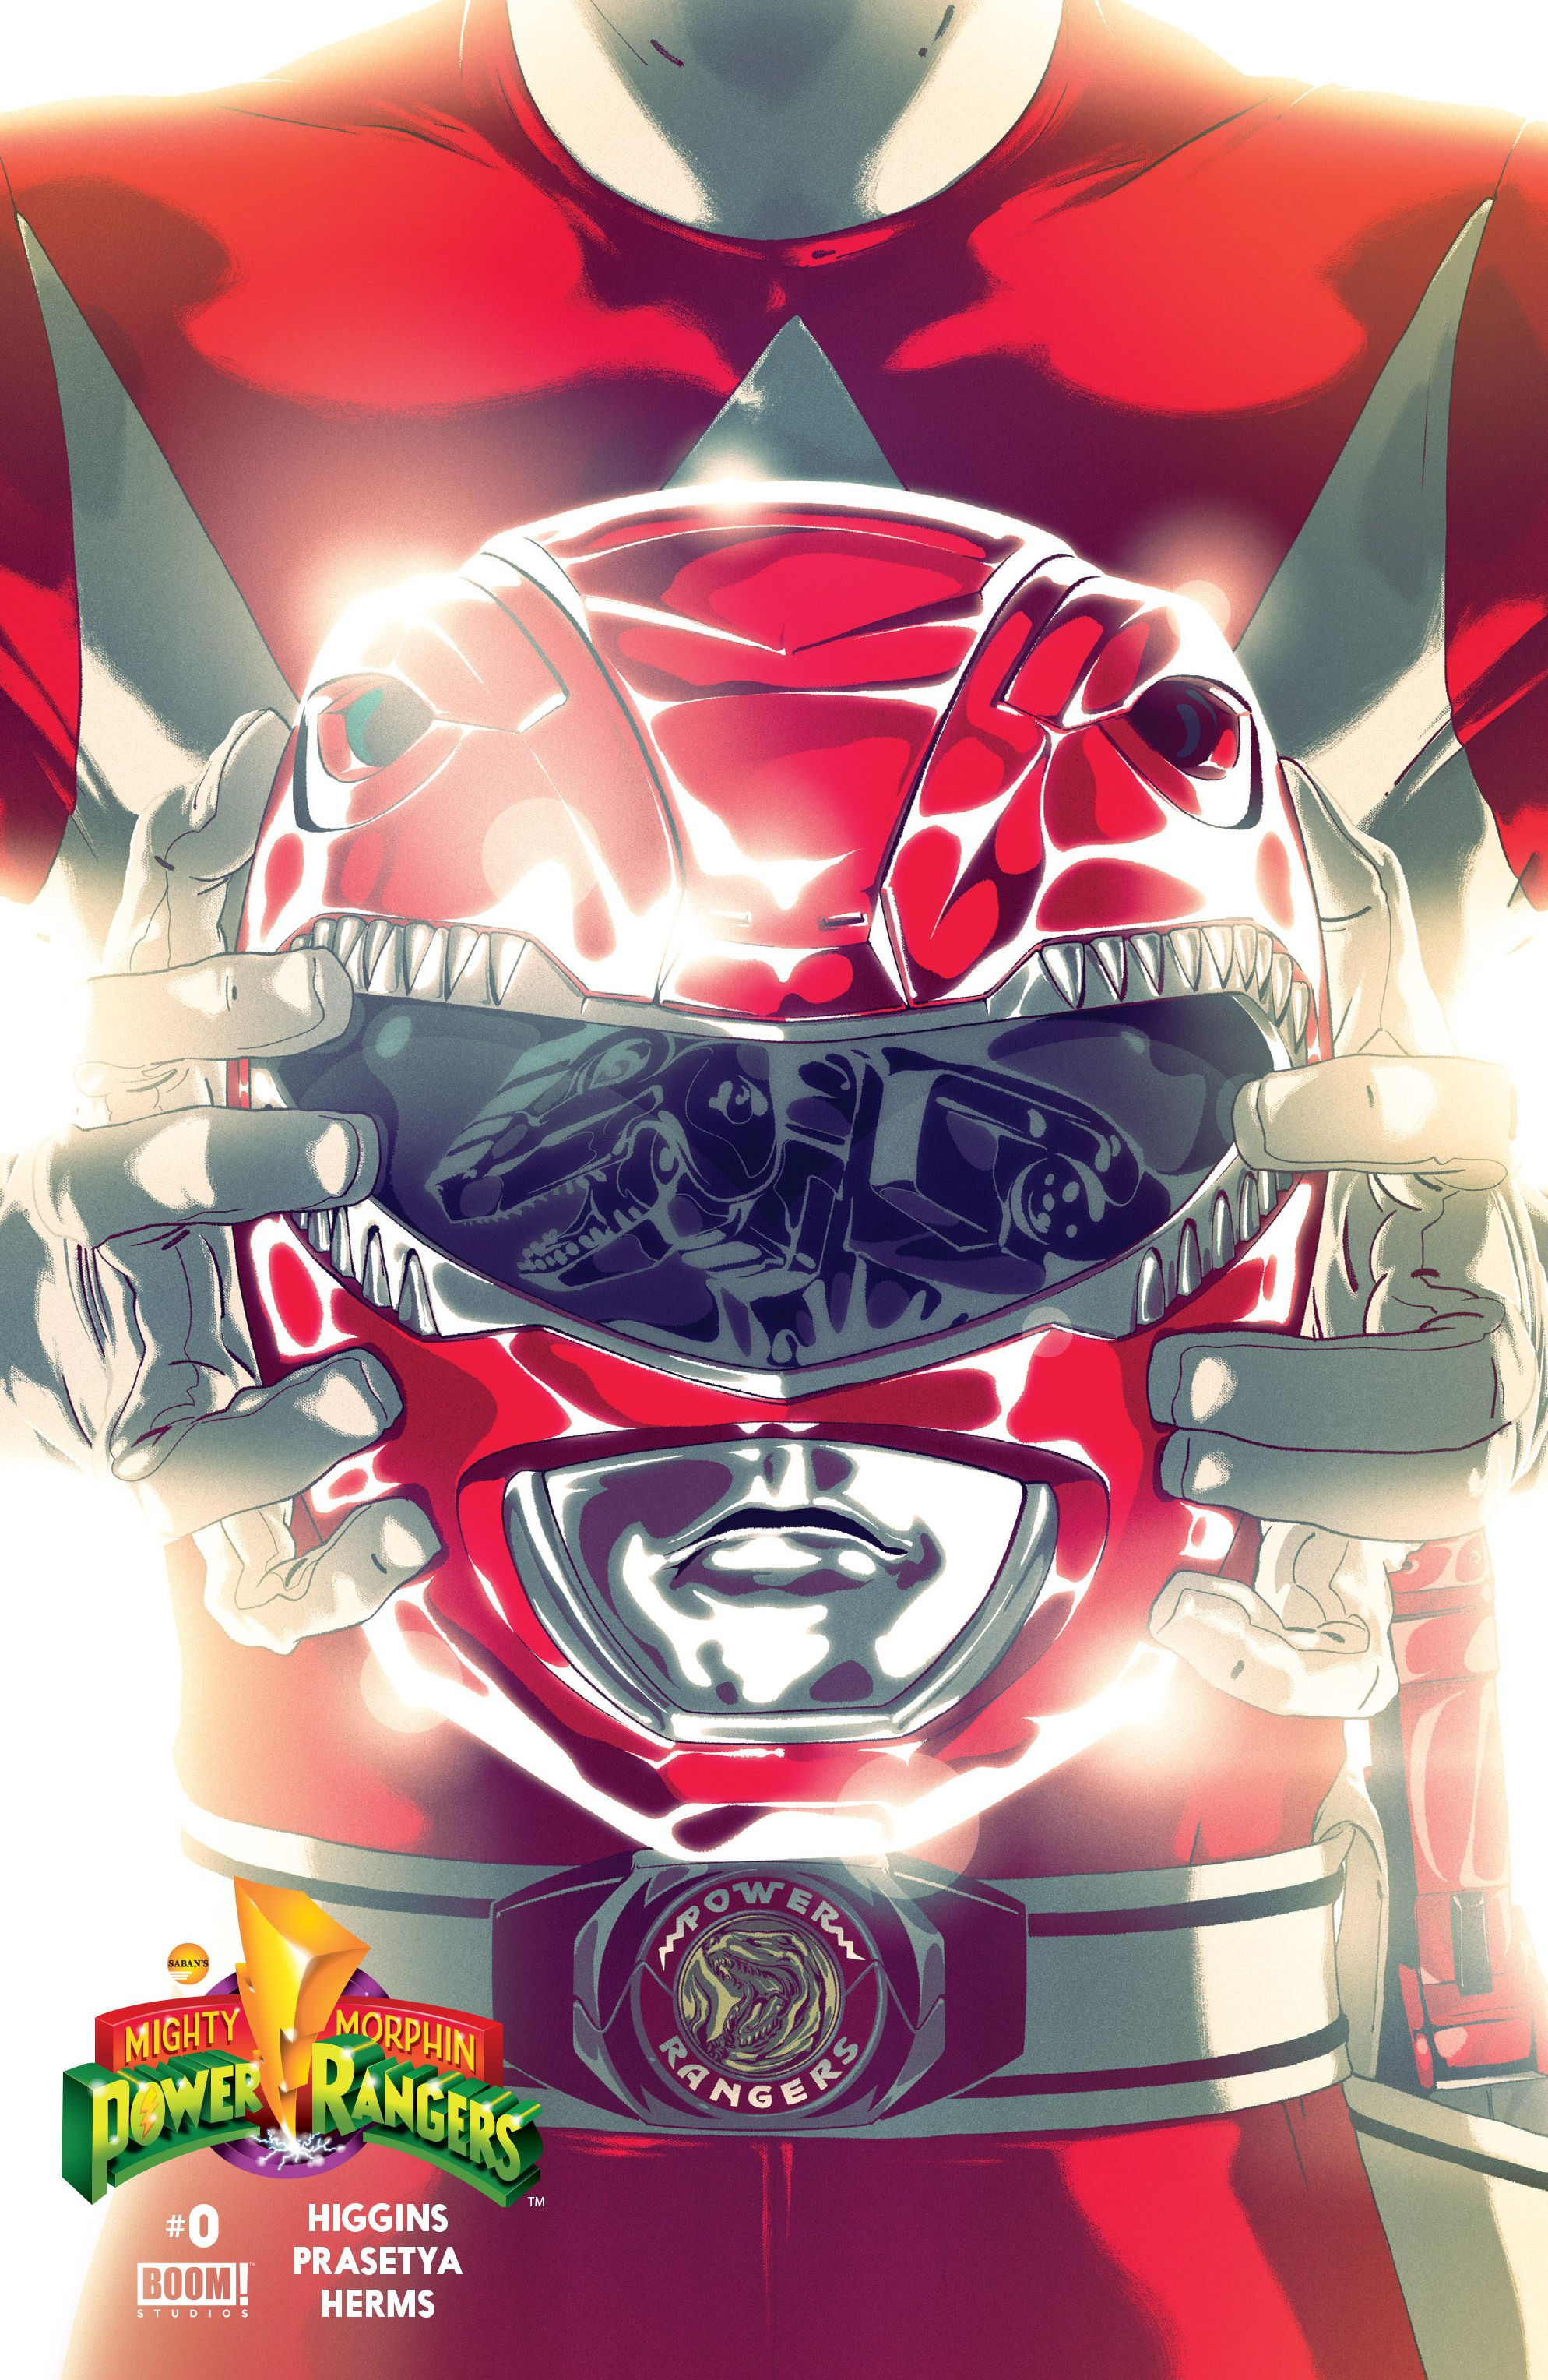 Mighty Morphin Power Rangers Issue 0 Read Mighty Morphin Power